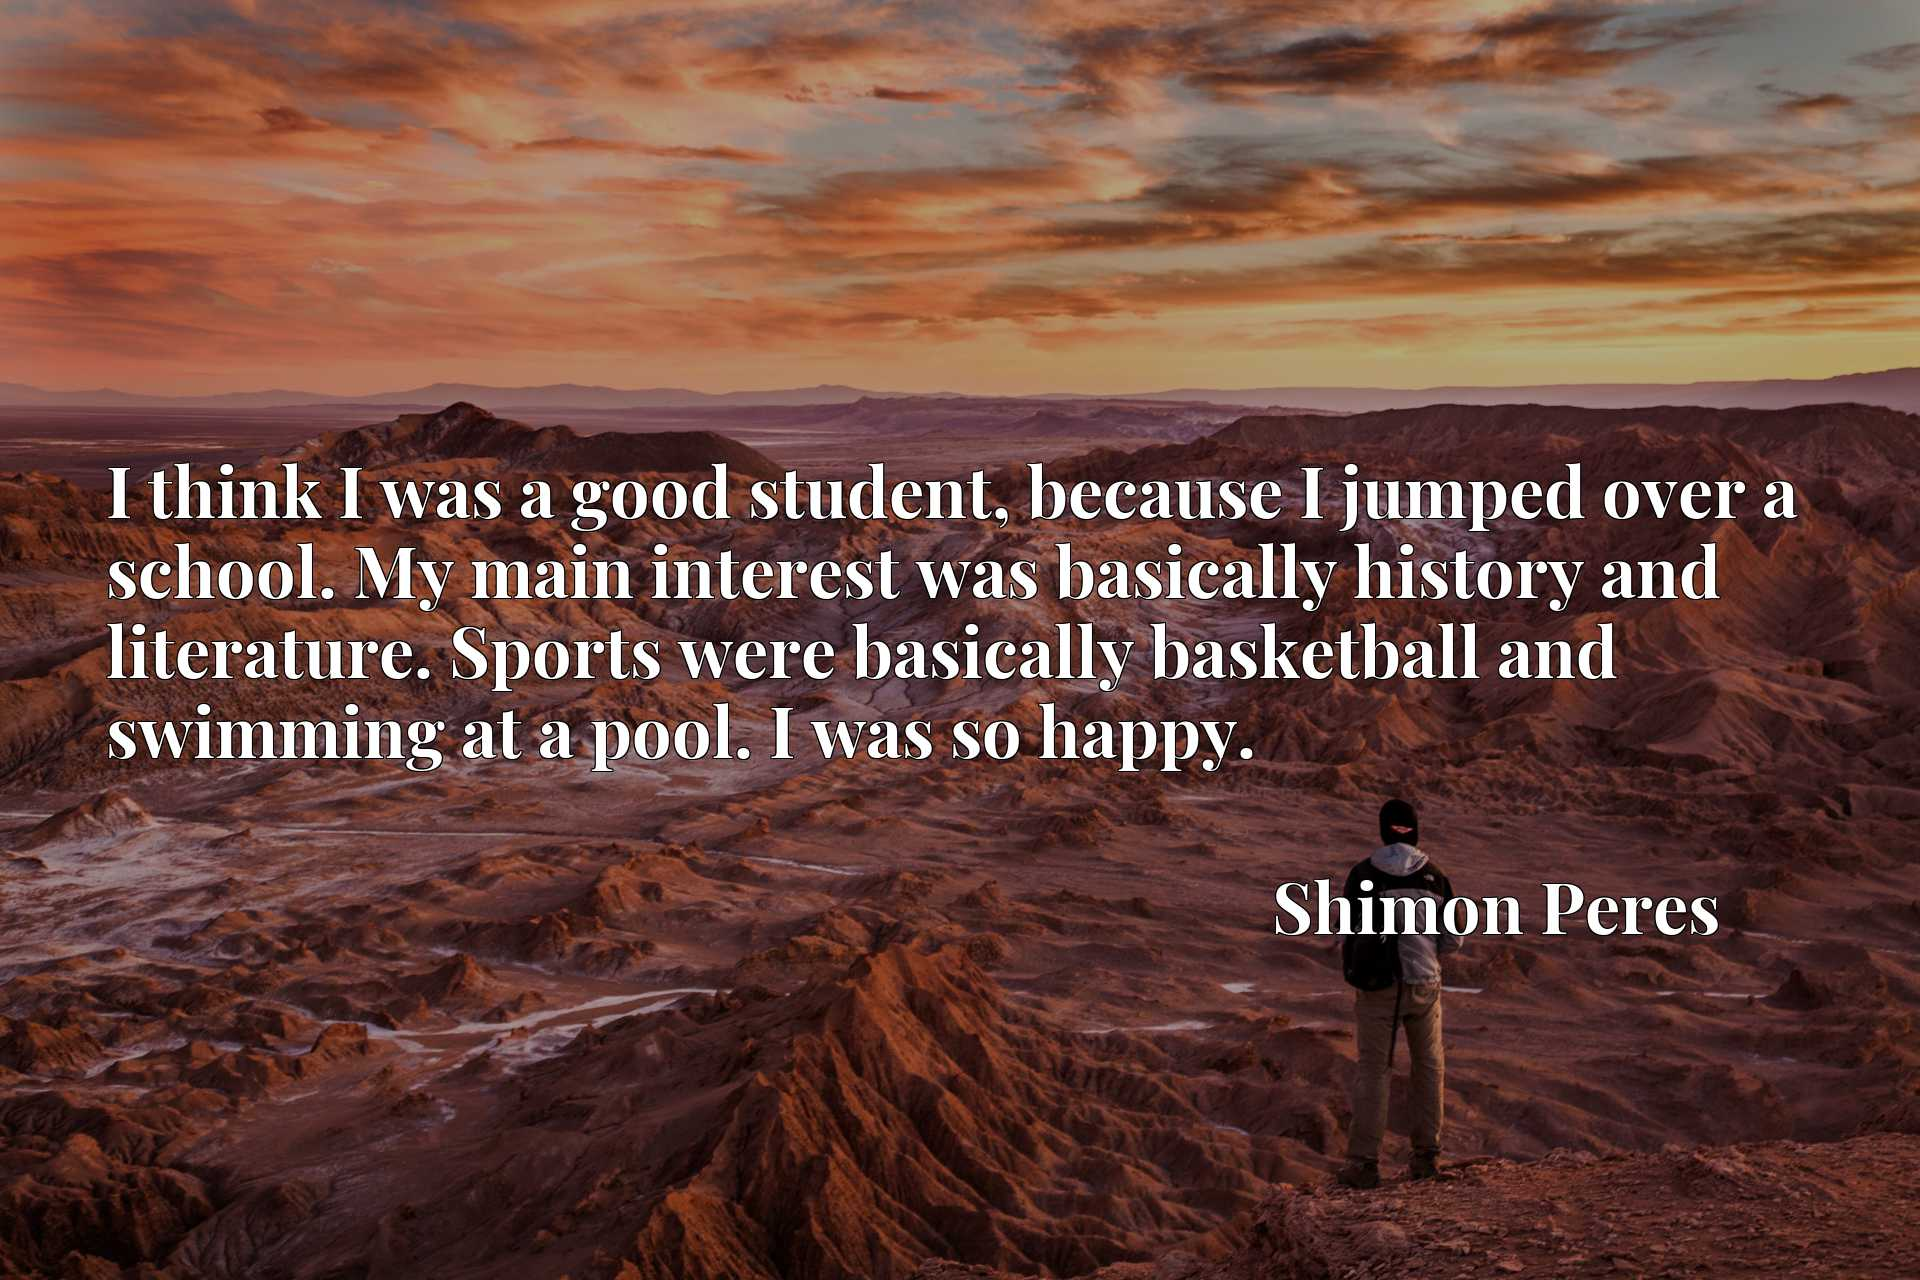 I think I was a good student, because I jumped over a school. My main interest was basically history and literature. Sports were basically basketball and swimming at a pool. I was so happy.